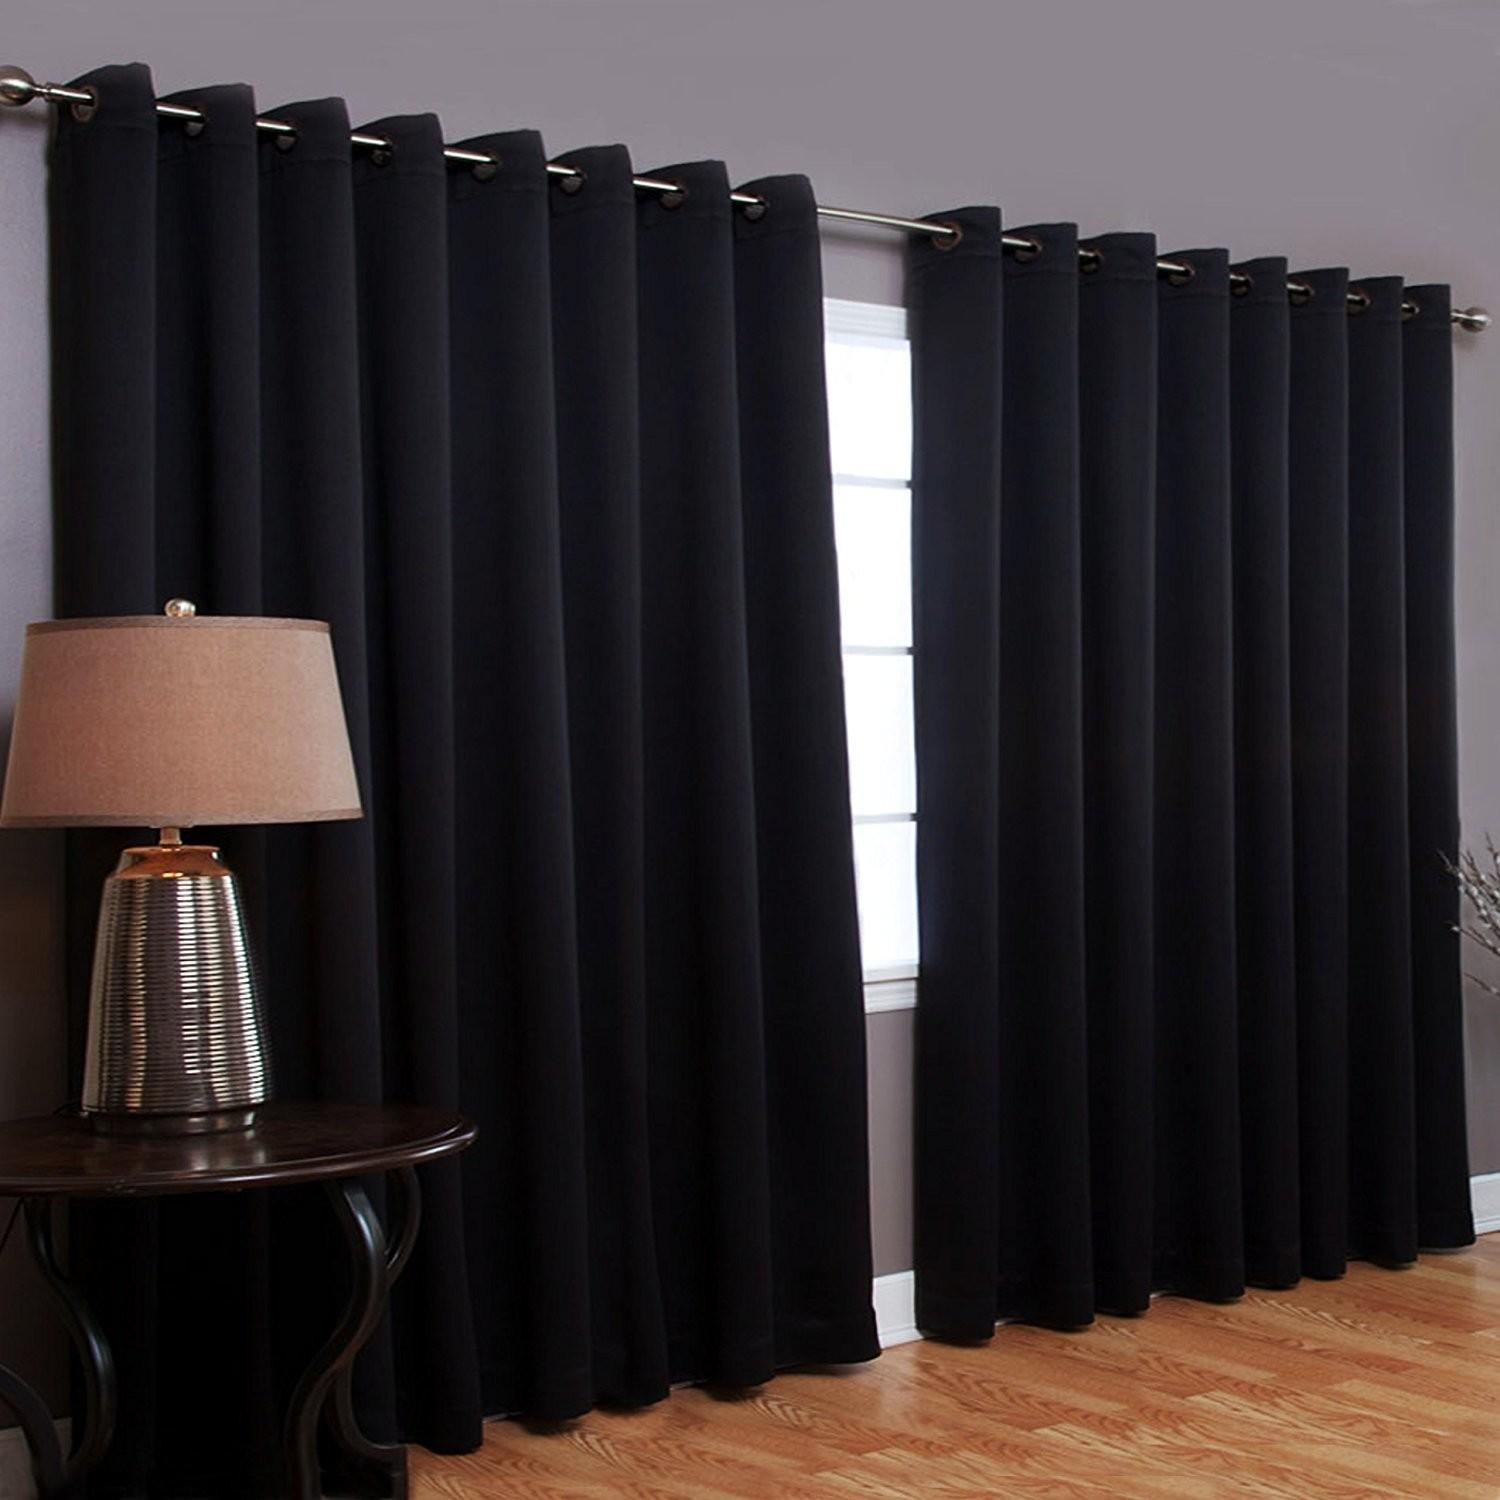 Great Variety Best Blackout Curtains Drapery Room Ideas